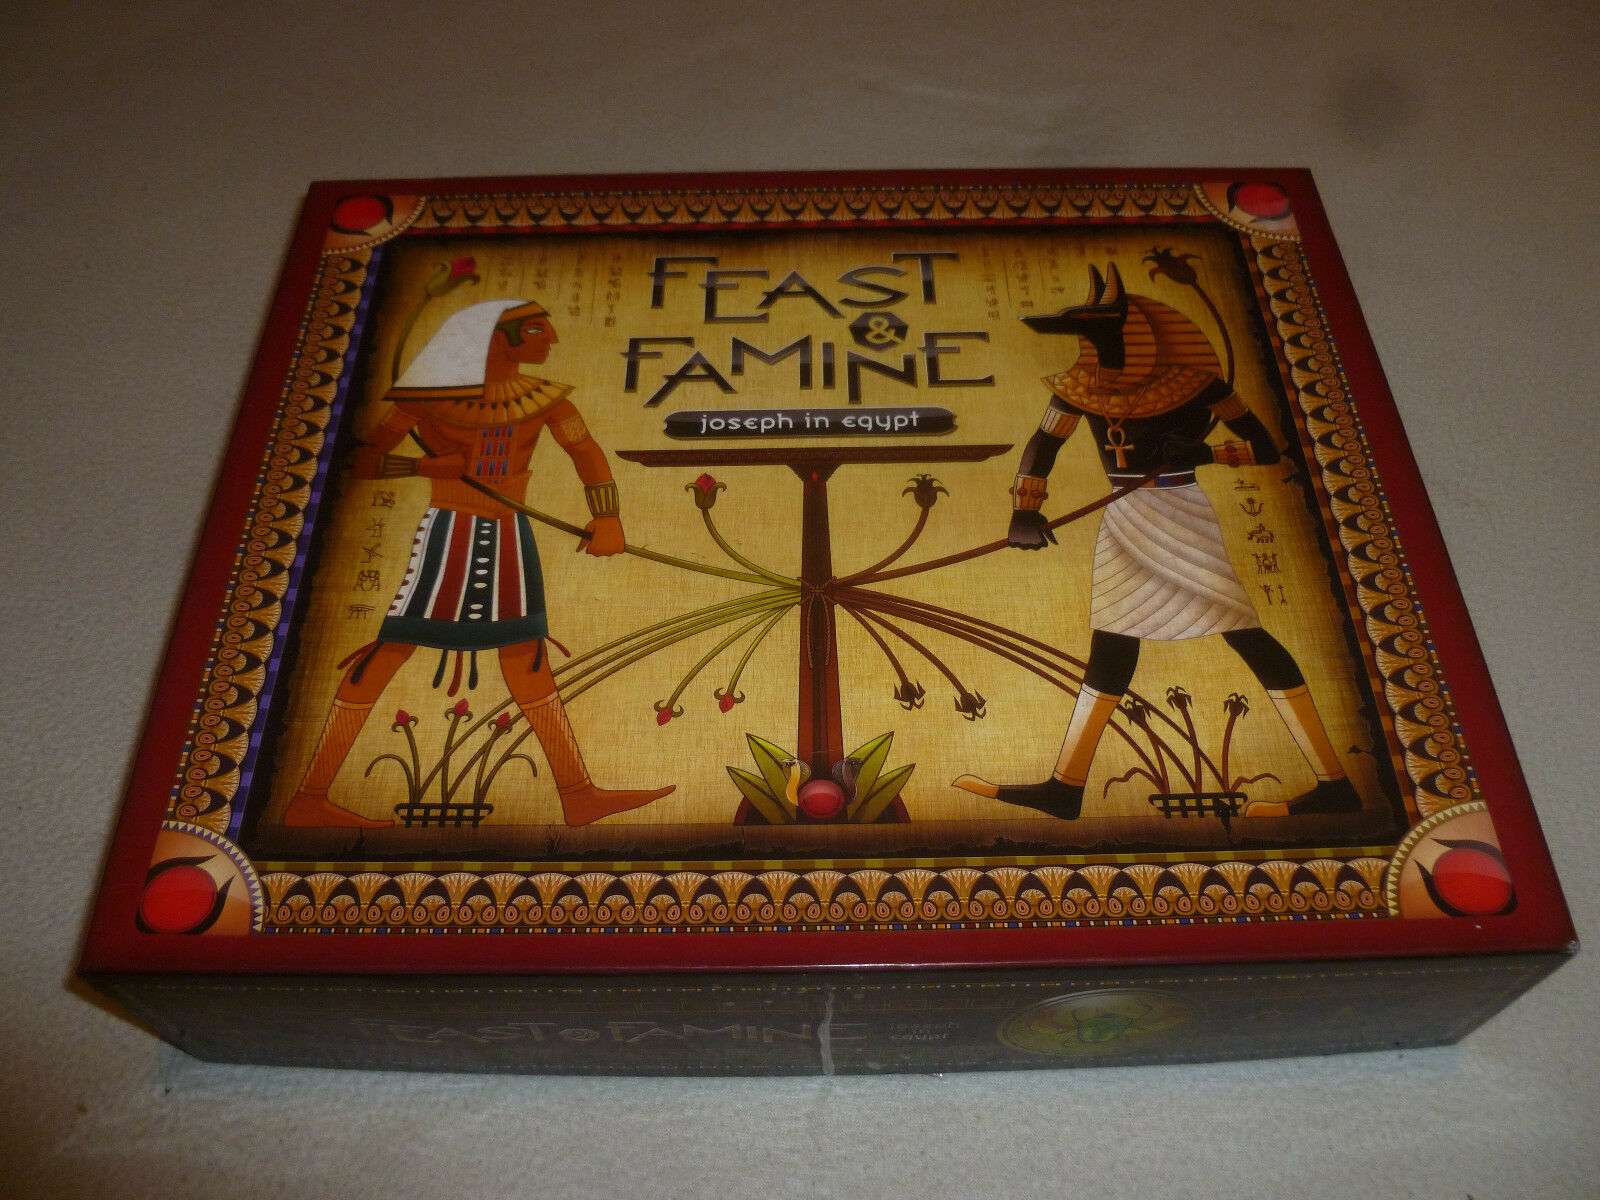 BOXED BOARD GAME FEAST & FAMINE JOSEPH IN EGYPT GOOD KNIGHT GAMES BIBLE ISRAEL